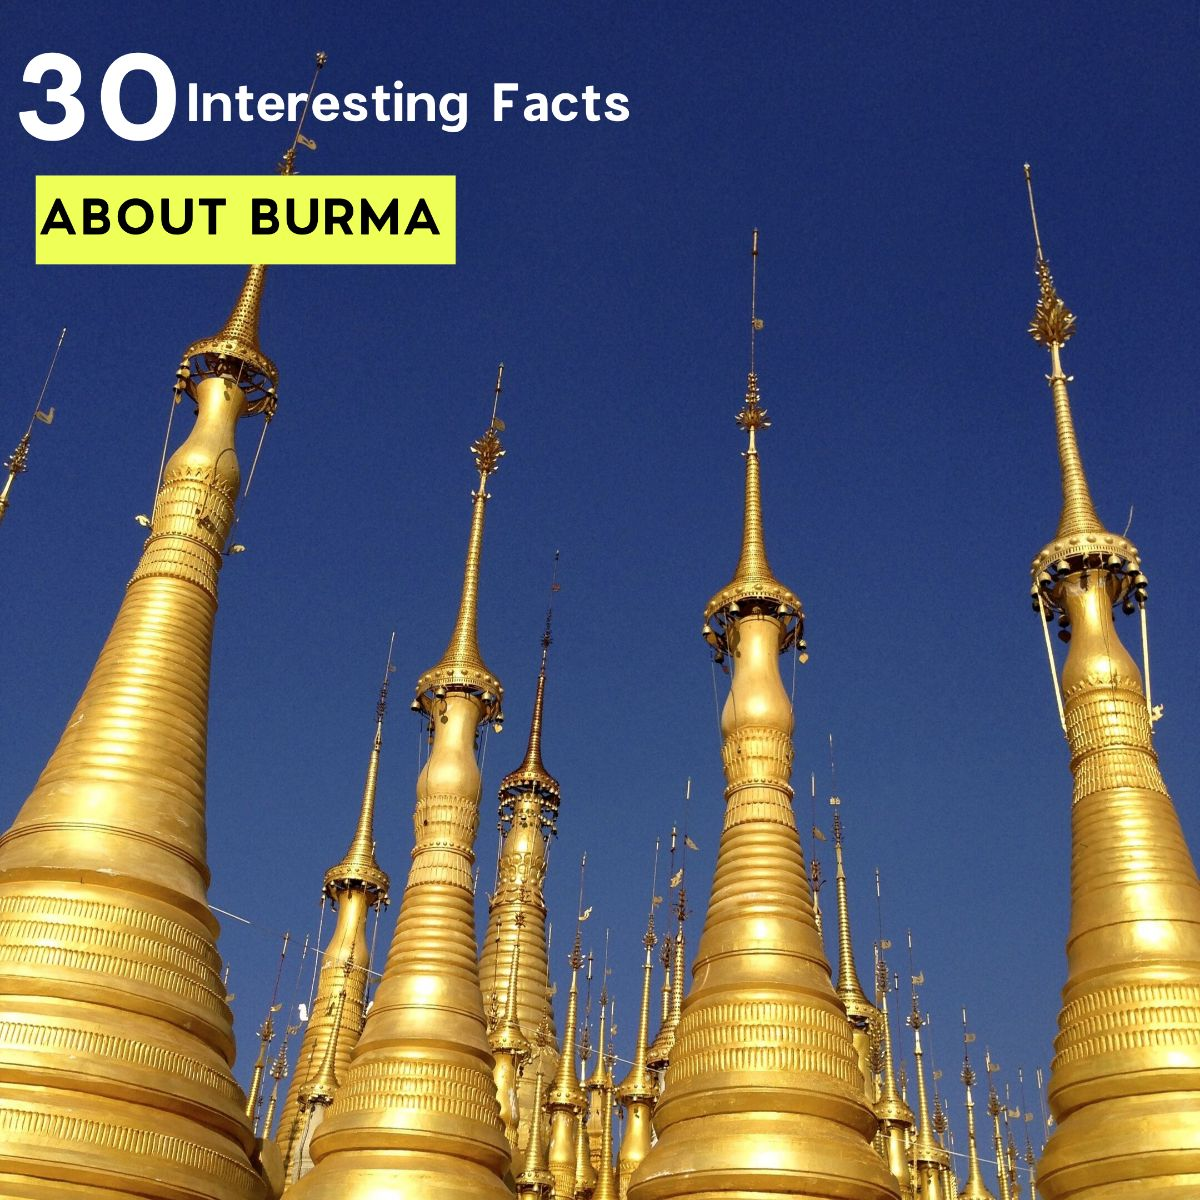 30 Interesting Facts about Burma